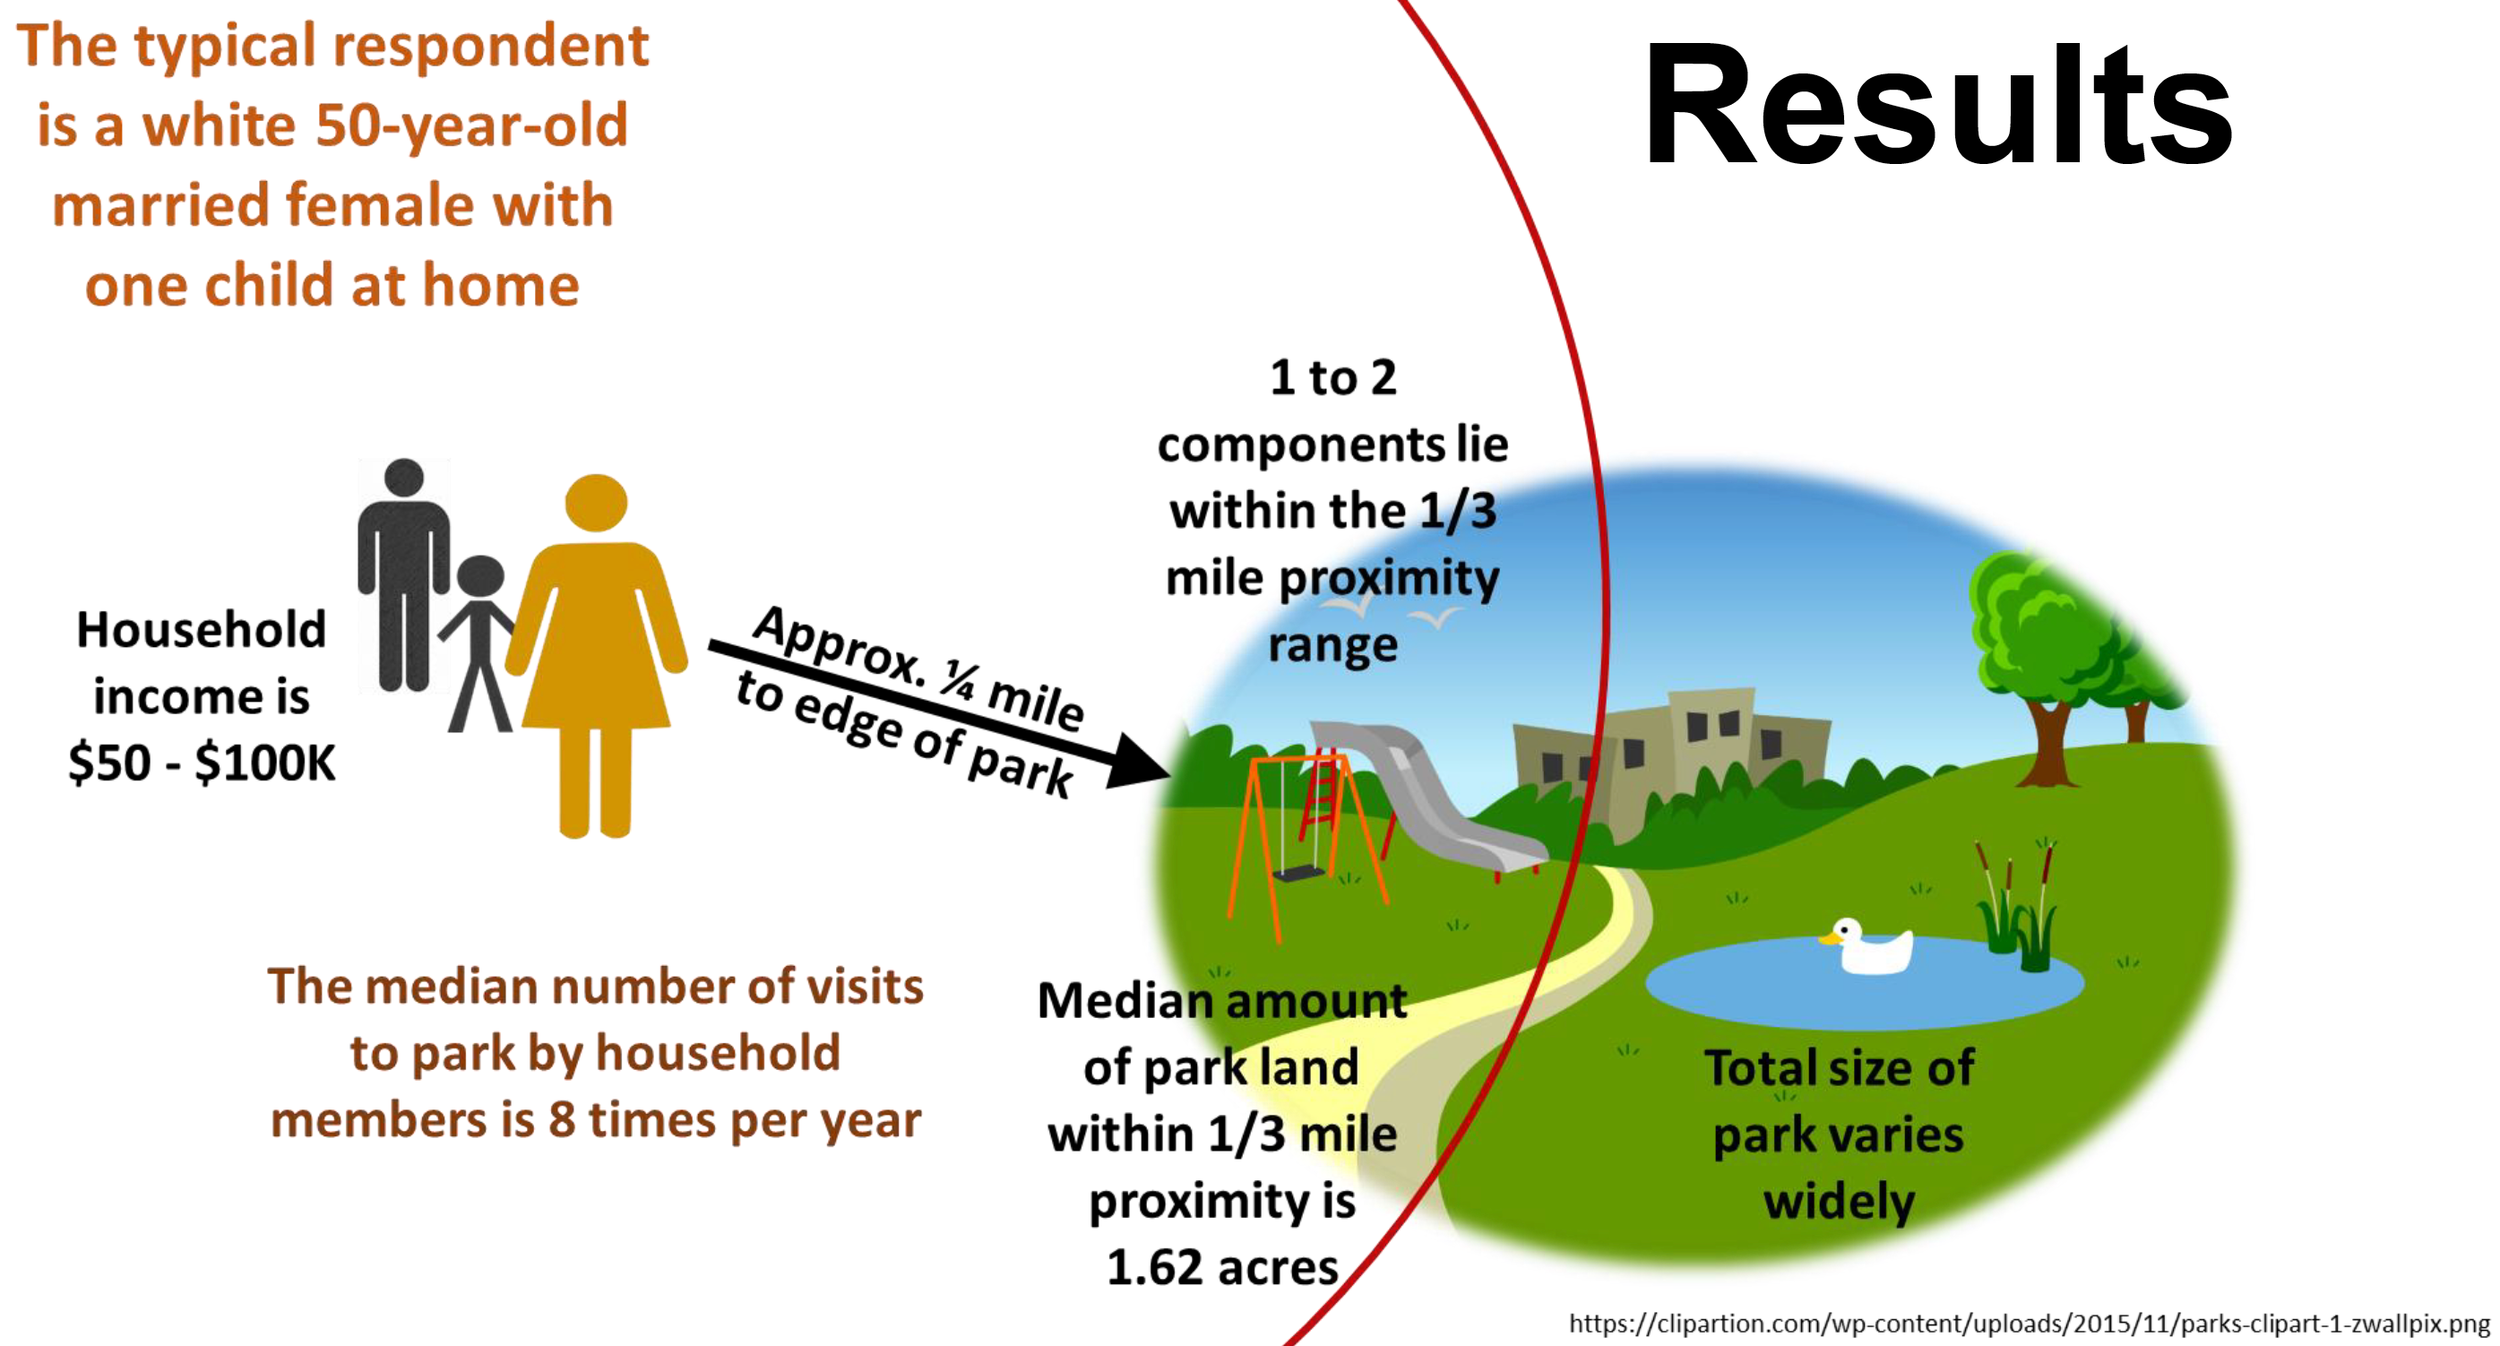 Illustrating the benefits of parks and outdoor green spaces on peoples' health and wellbeing